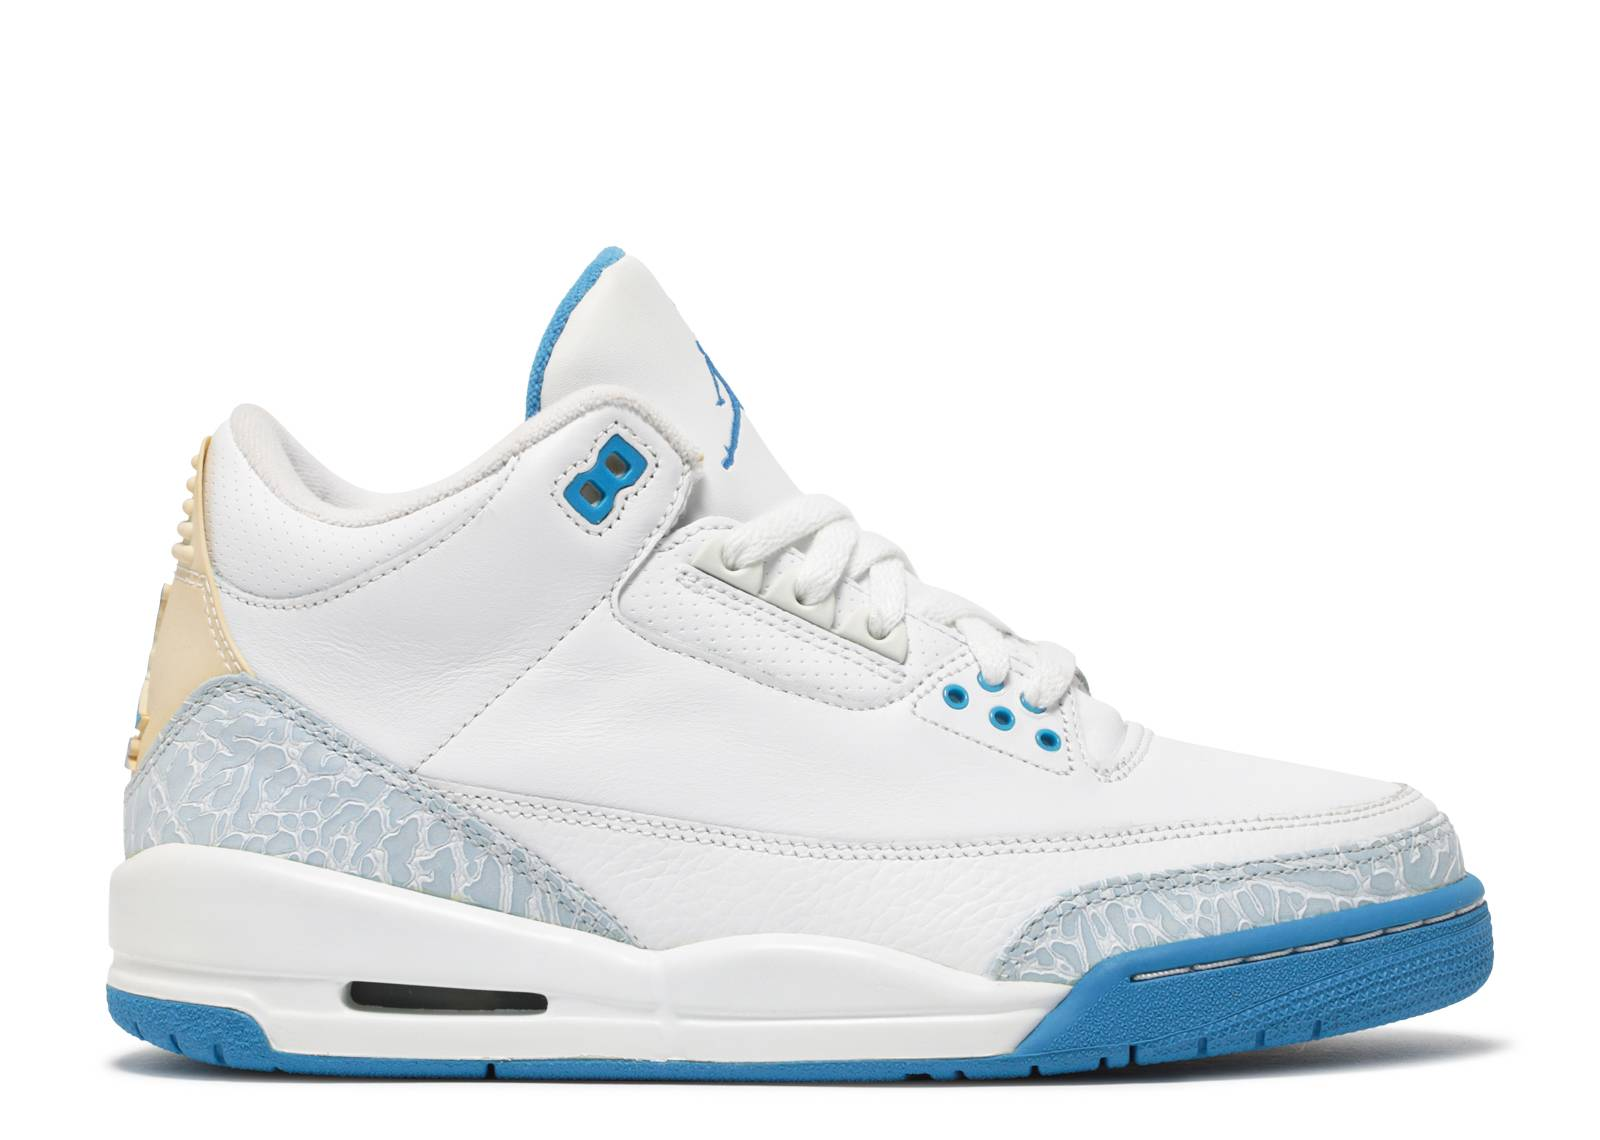 ee6418e6ff3781 Womens Air Jordan 3 Retro - Air Jordan - 315296 142 - white harbor ...